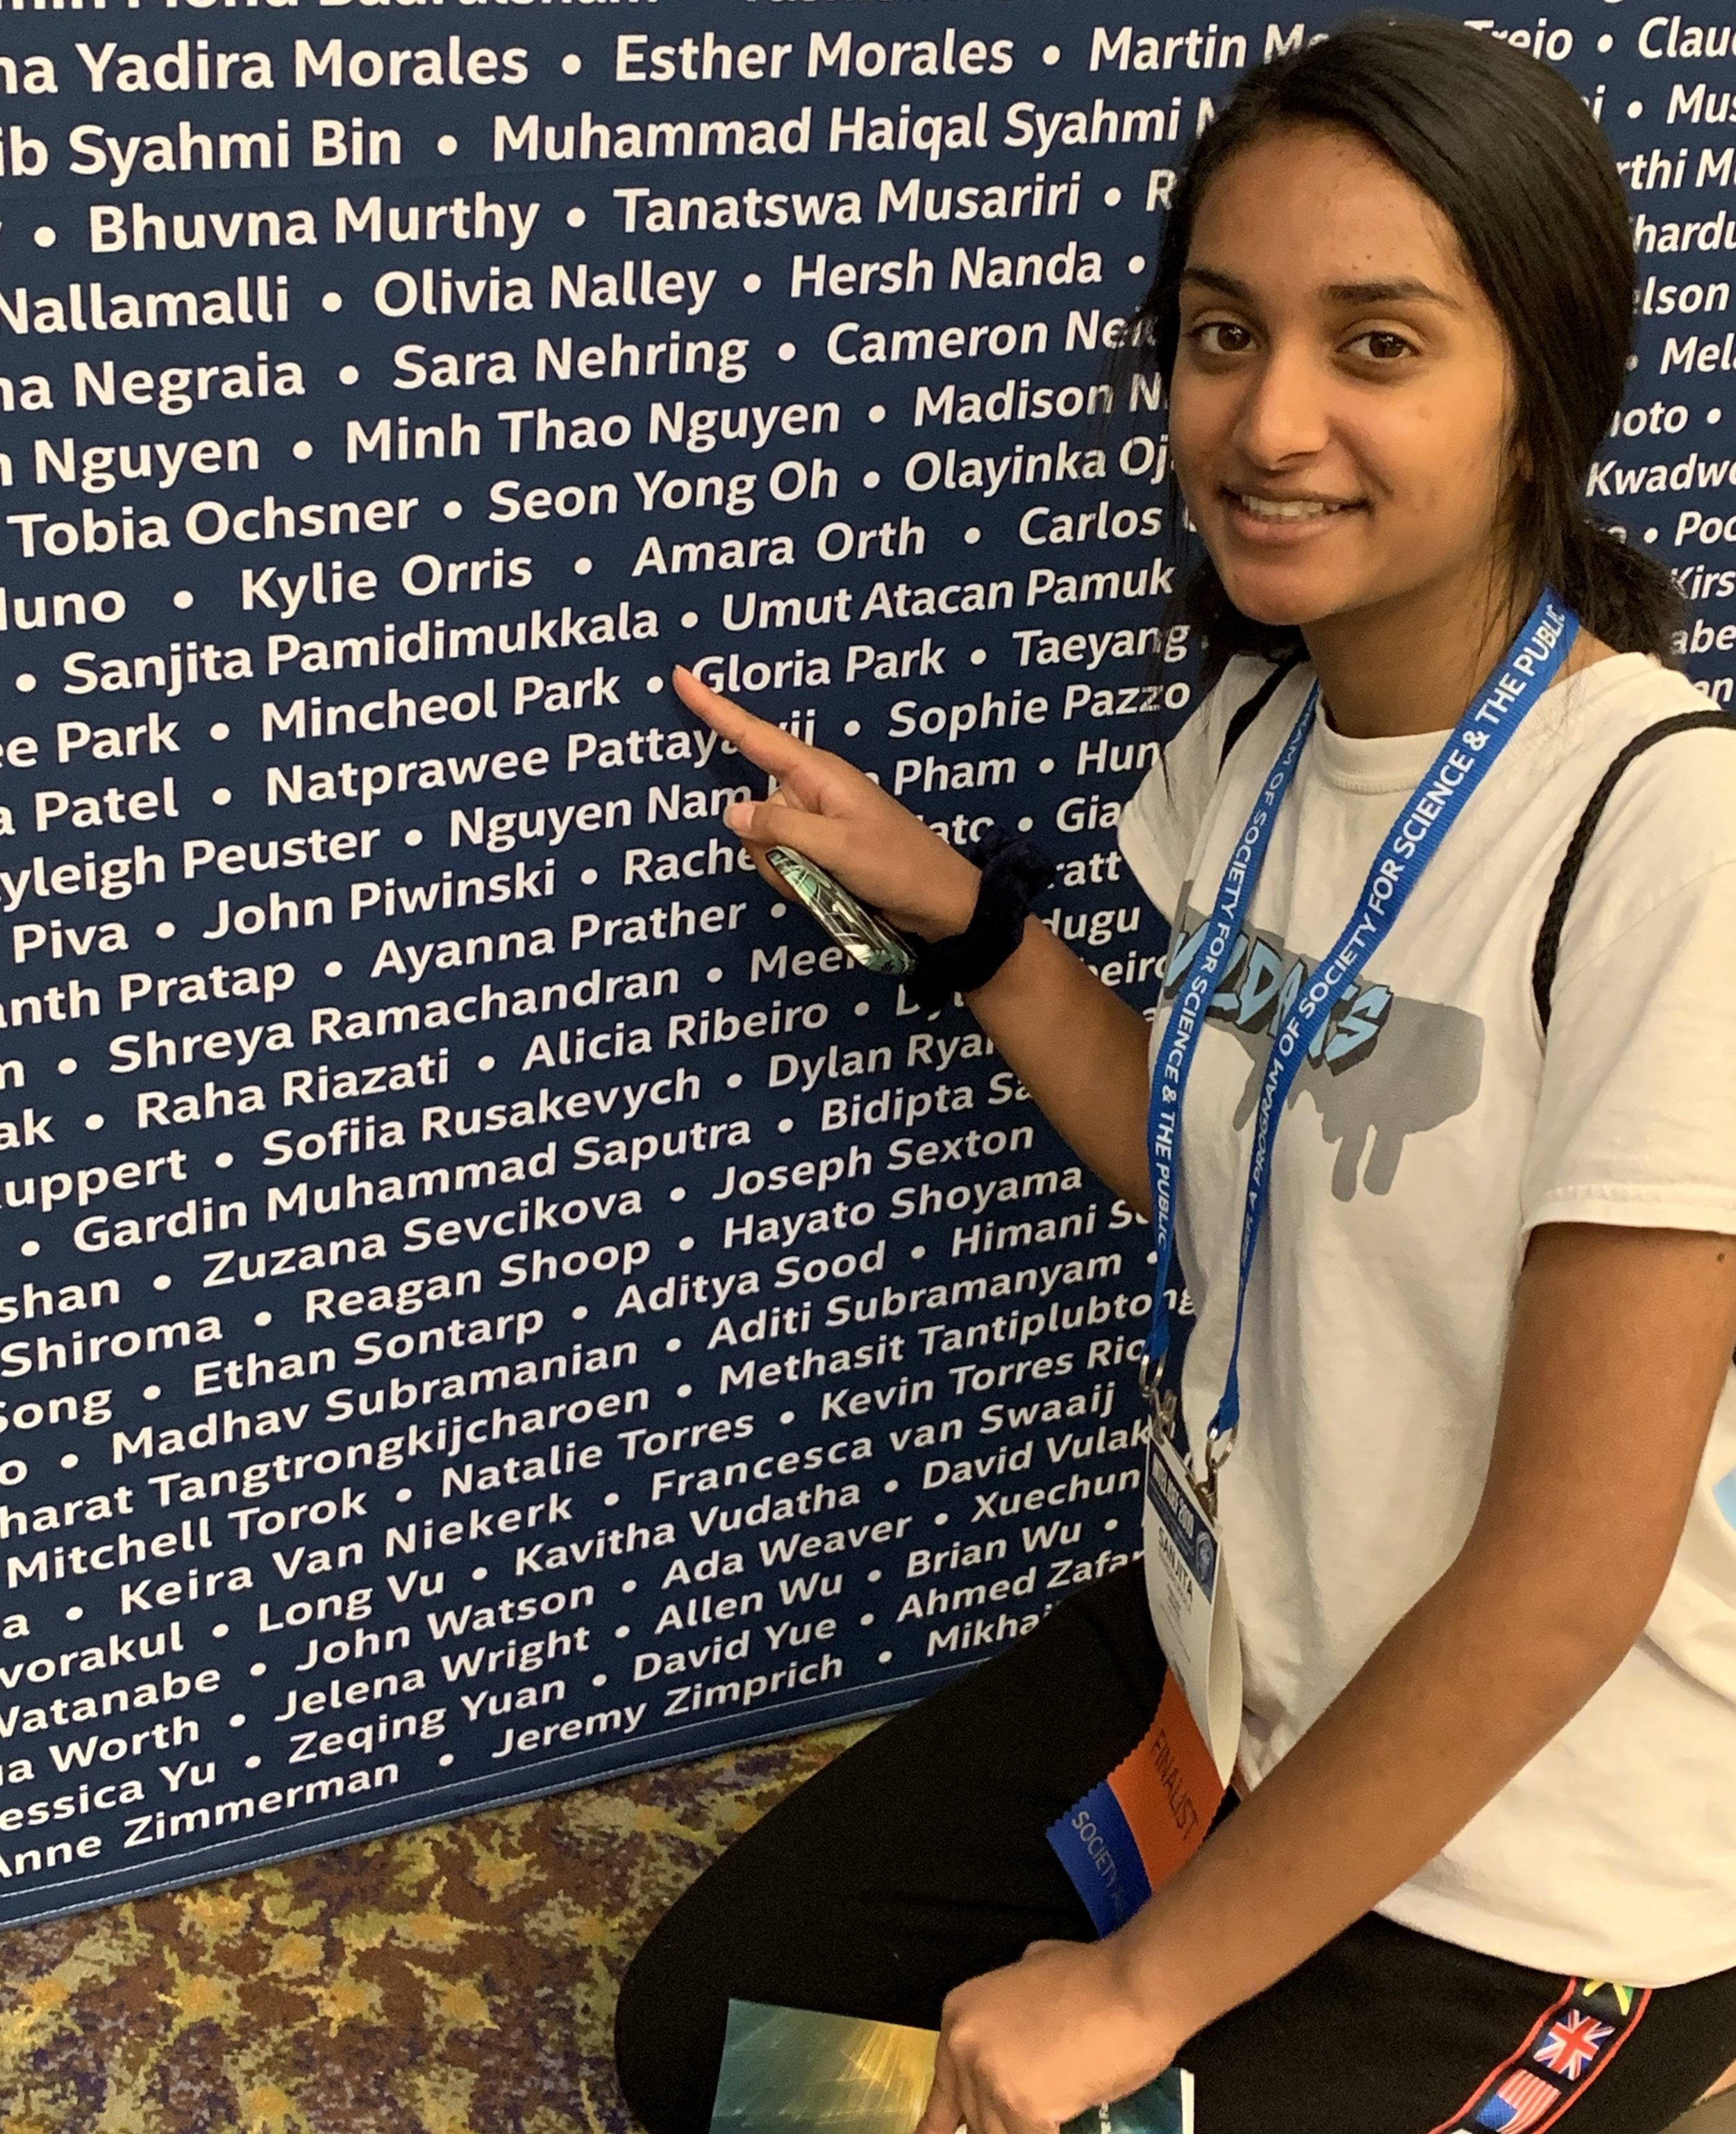 Sanjita at name board.jpg